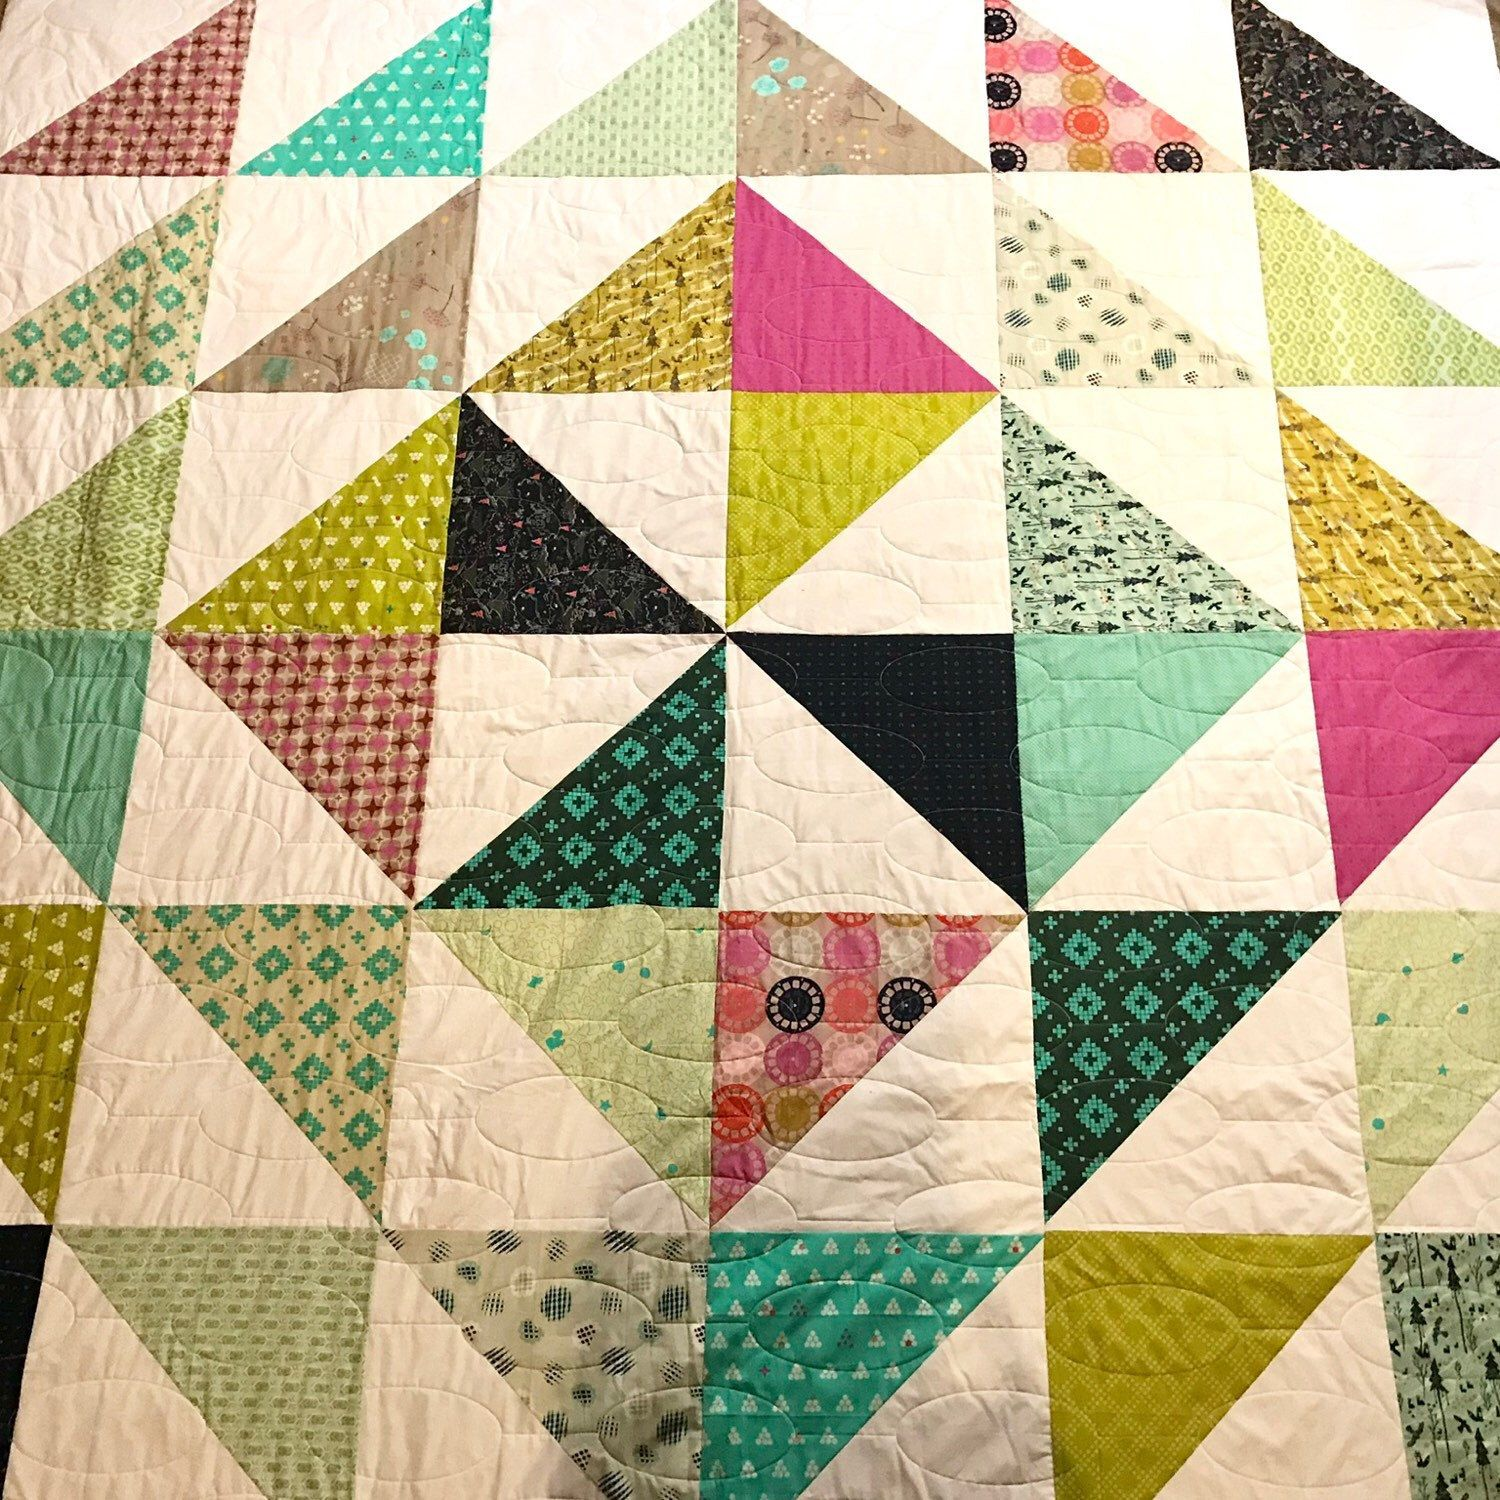 25 Off Entire Inventory July 19th Through July 22nd King Size Quilt Scandinavian Quilts Quilts